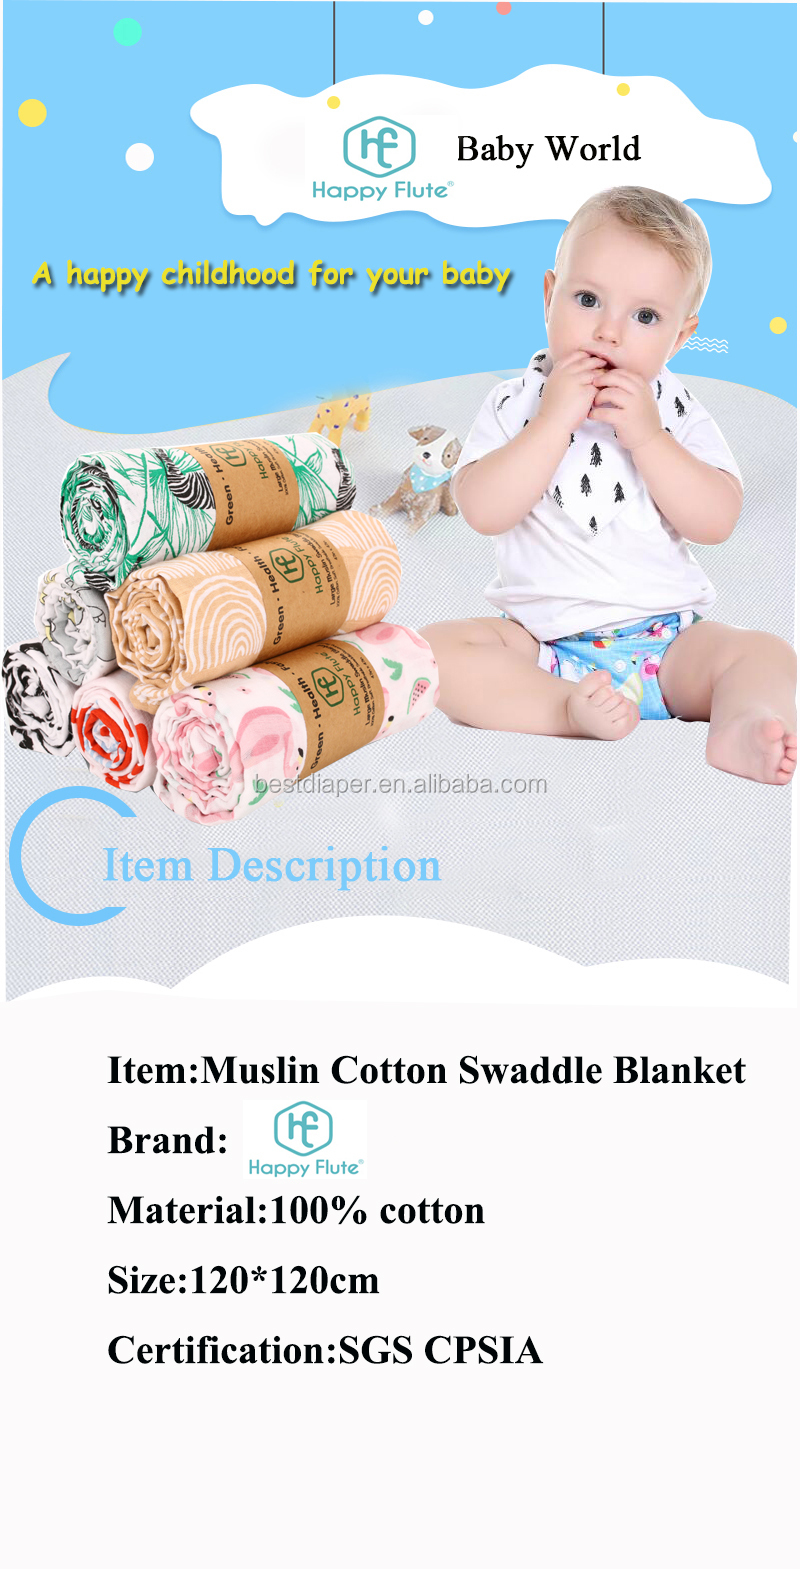 HappyFlute High quality animal print custom baby cotton muslin swaddle blanket for kids